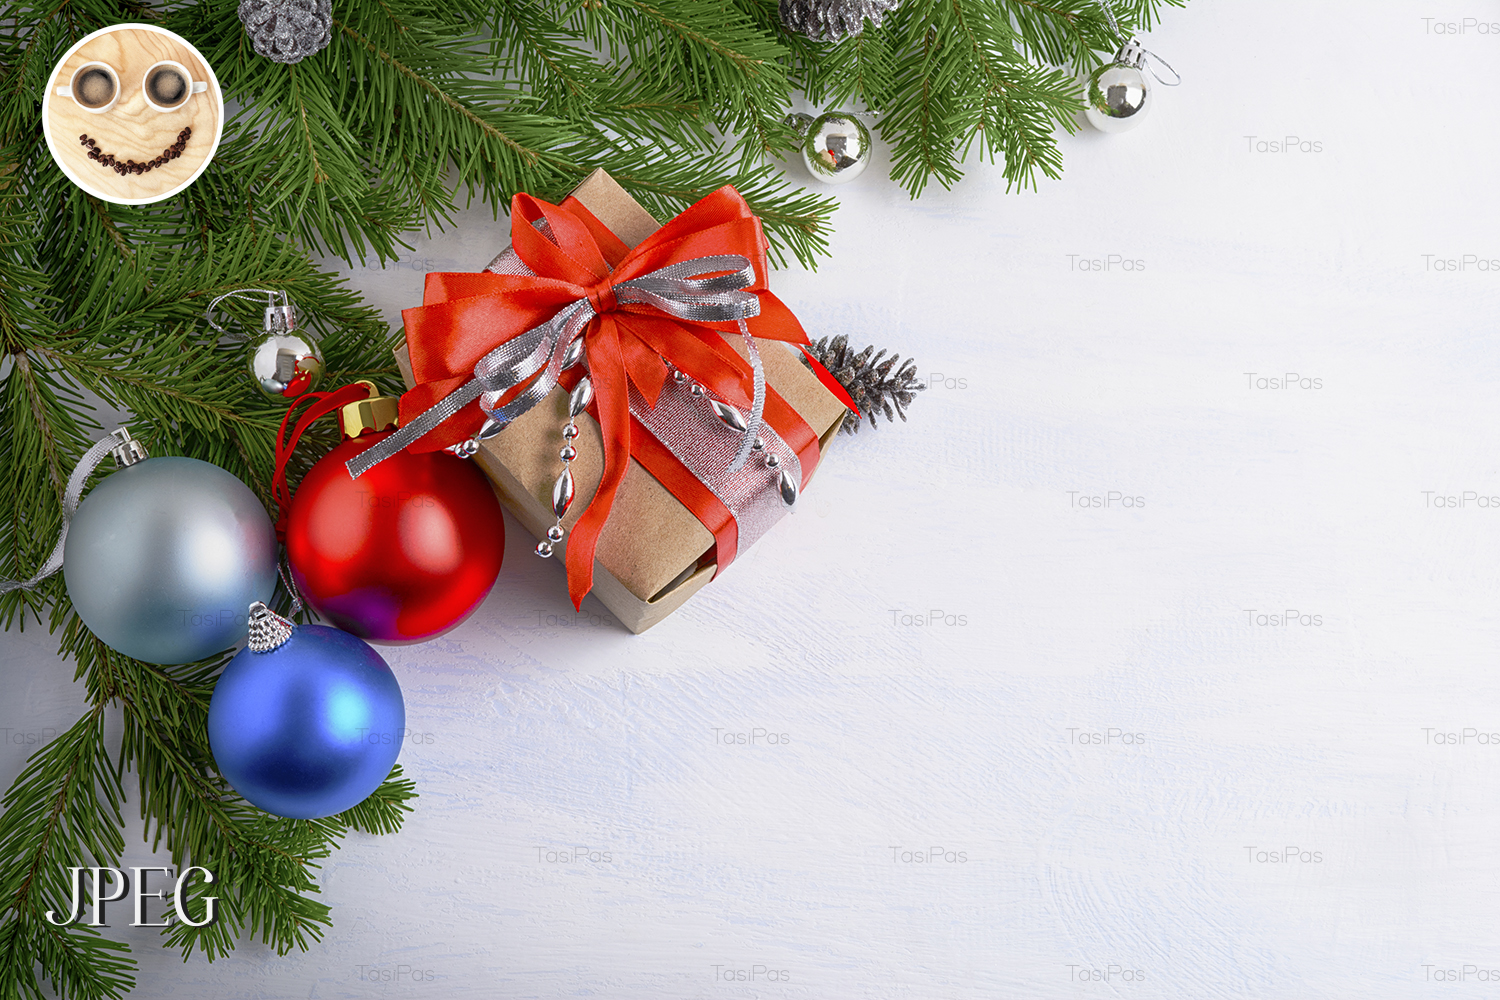 Christmas background with gift box 01 example image 1